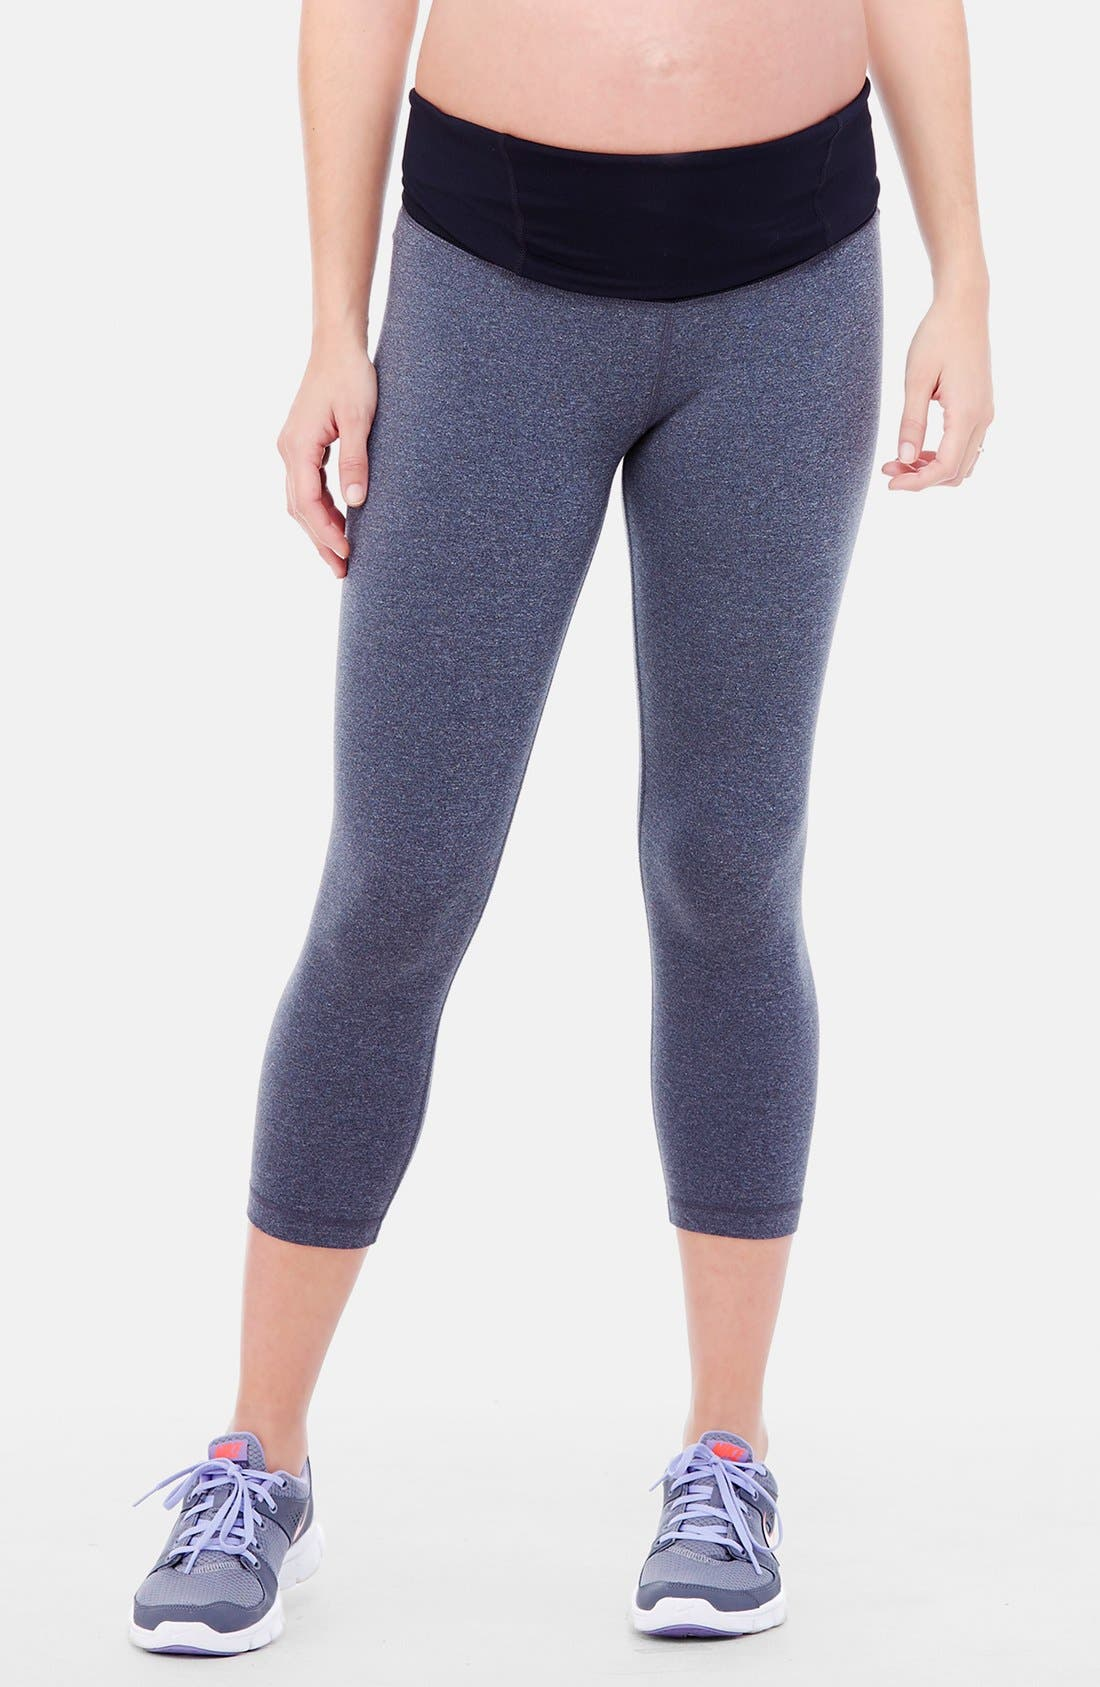 Active Maternity Capri Pants with Crossover Panel,                             Alternate thumbnail 3, color,                             Dark Heather Grey